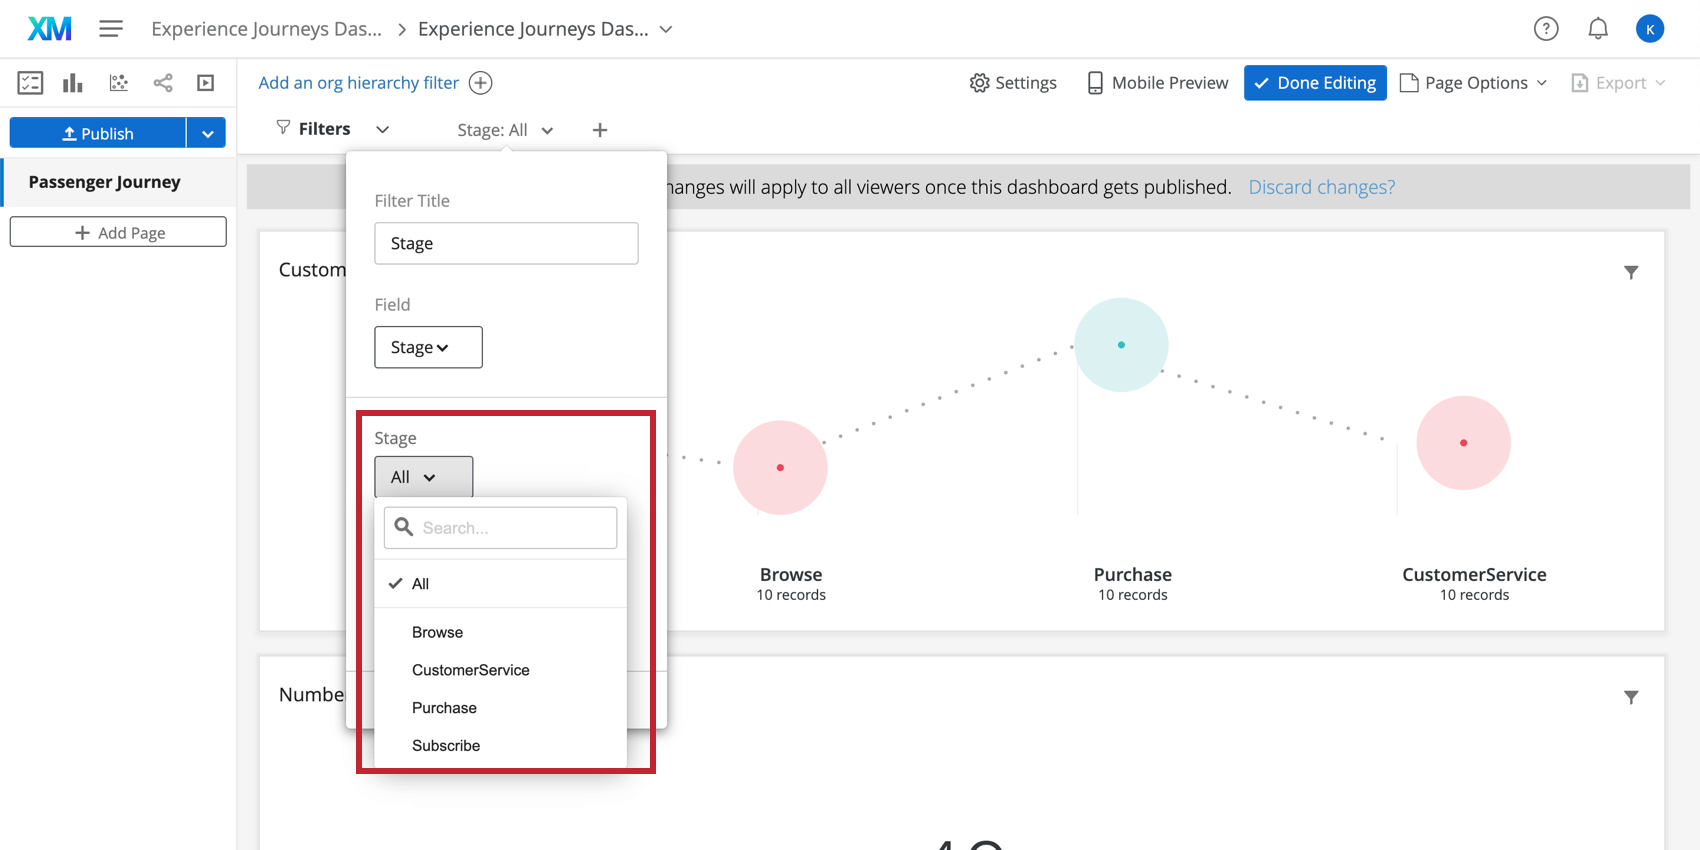 Selecting a specific stage from the dashboard page filters